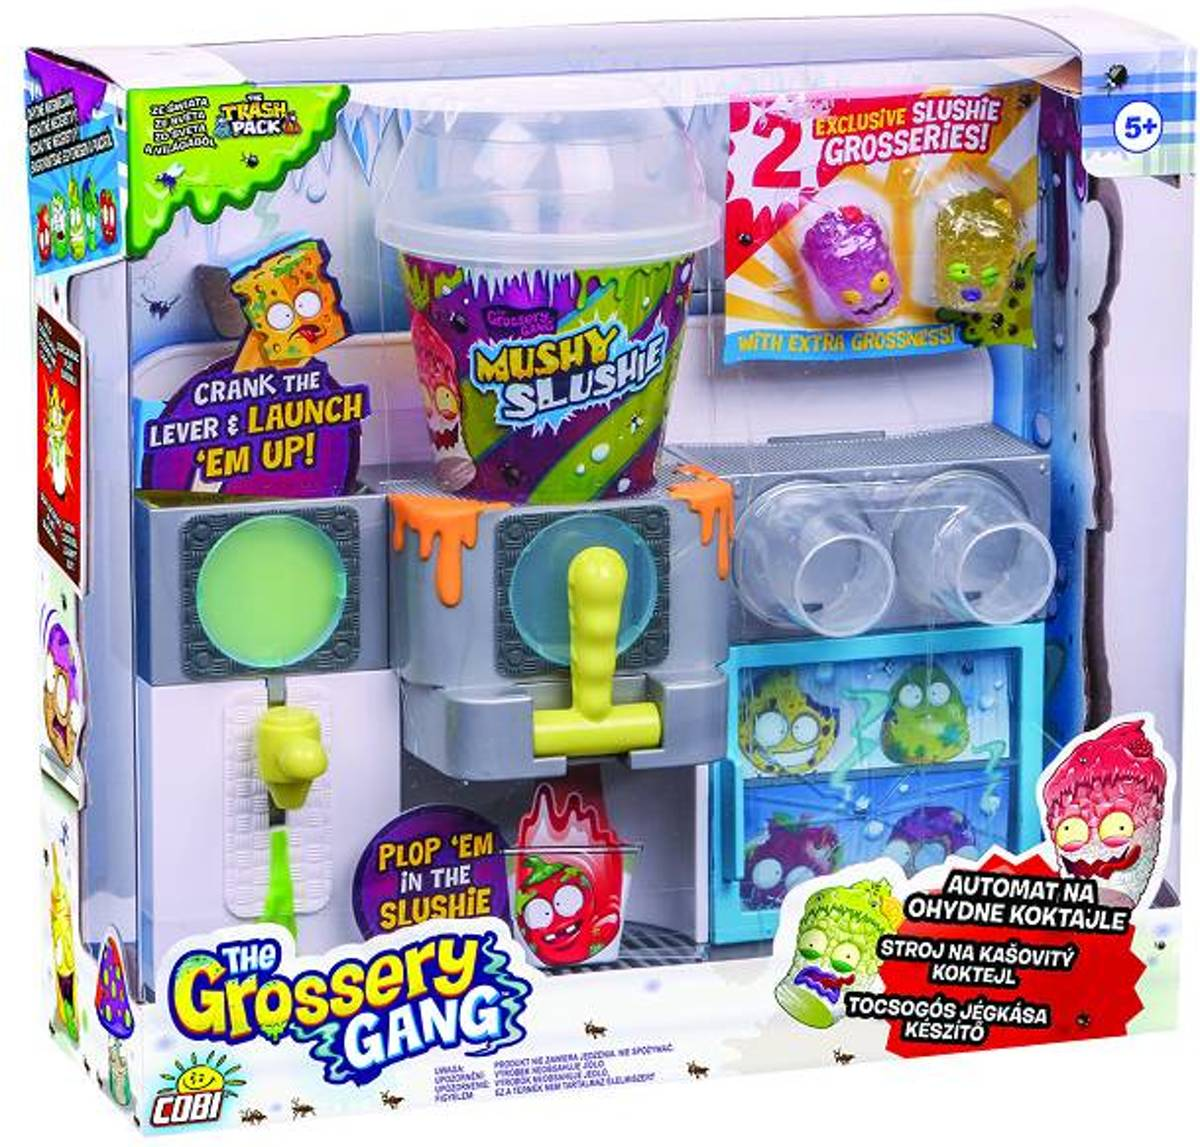 COBI GROSSERY GANG cocktail bar set